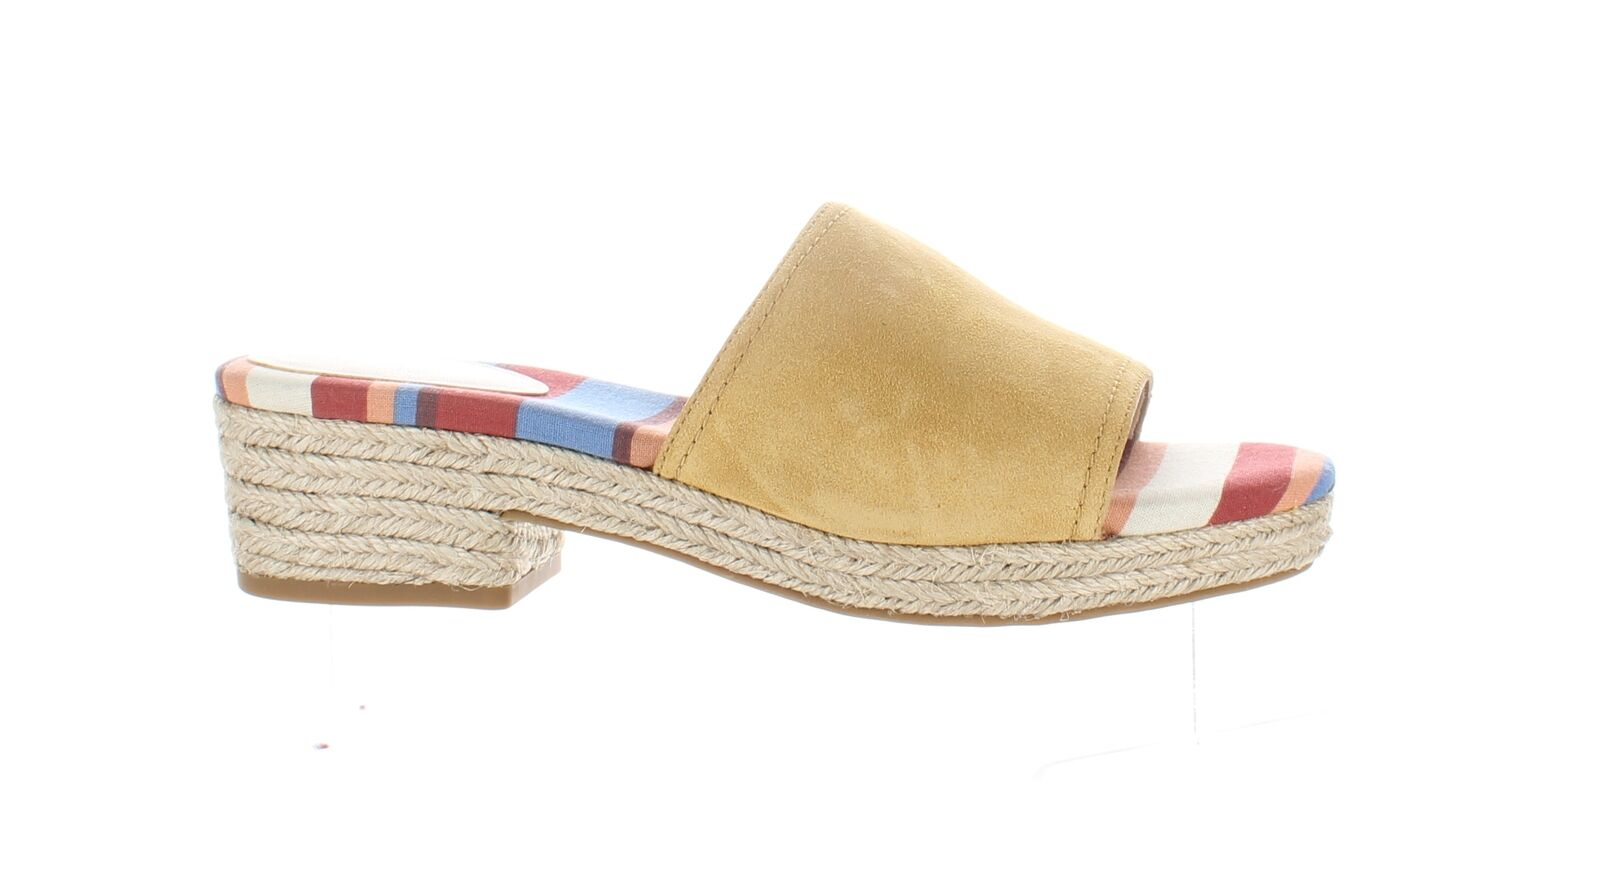 Cole Haan Womens Giselle Spruce Yellow Suede Espadrilles Size 6 (1797470)